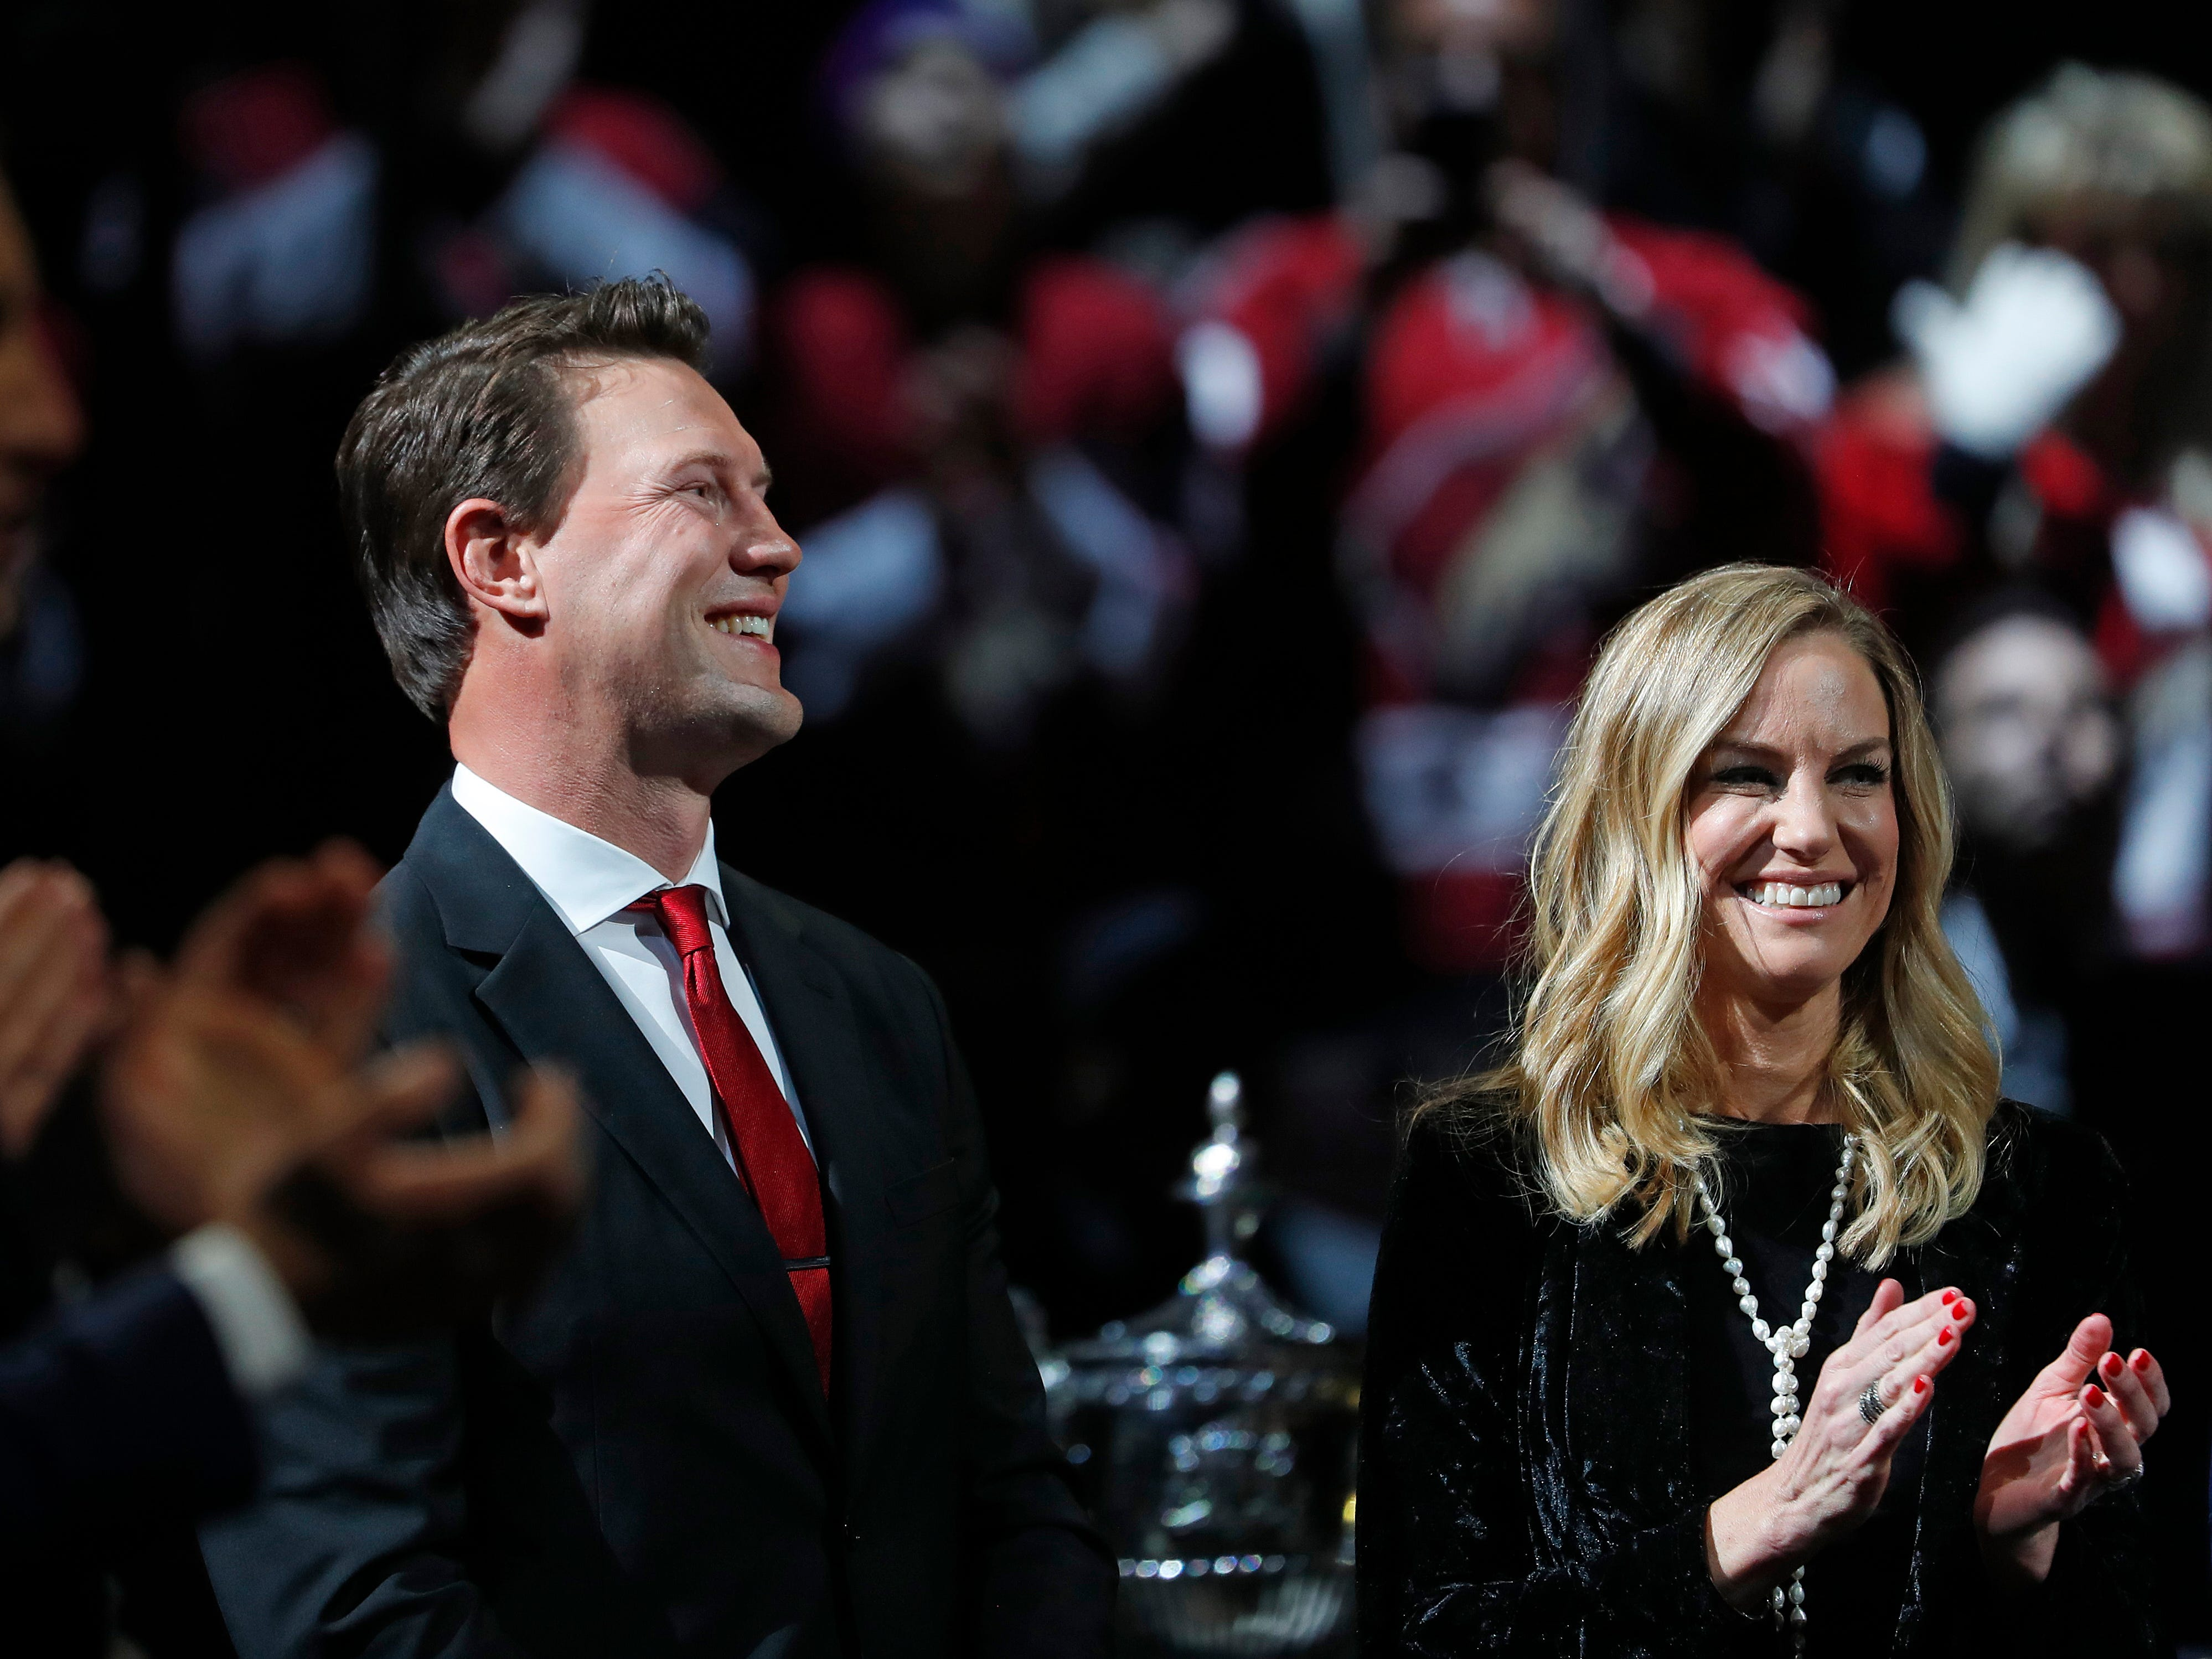 Shane Doan smiles as he receives a standing ovation during his jersey retirement ceremony at Gila River Arena in Glendale, Ariz. on February 24, 2019.